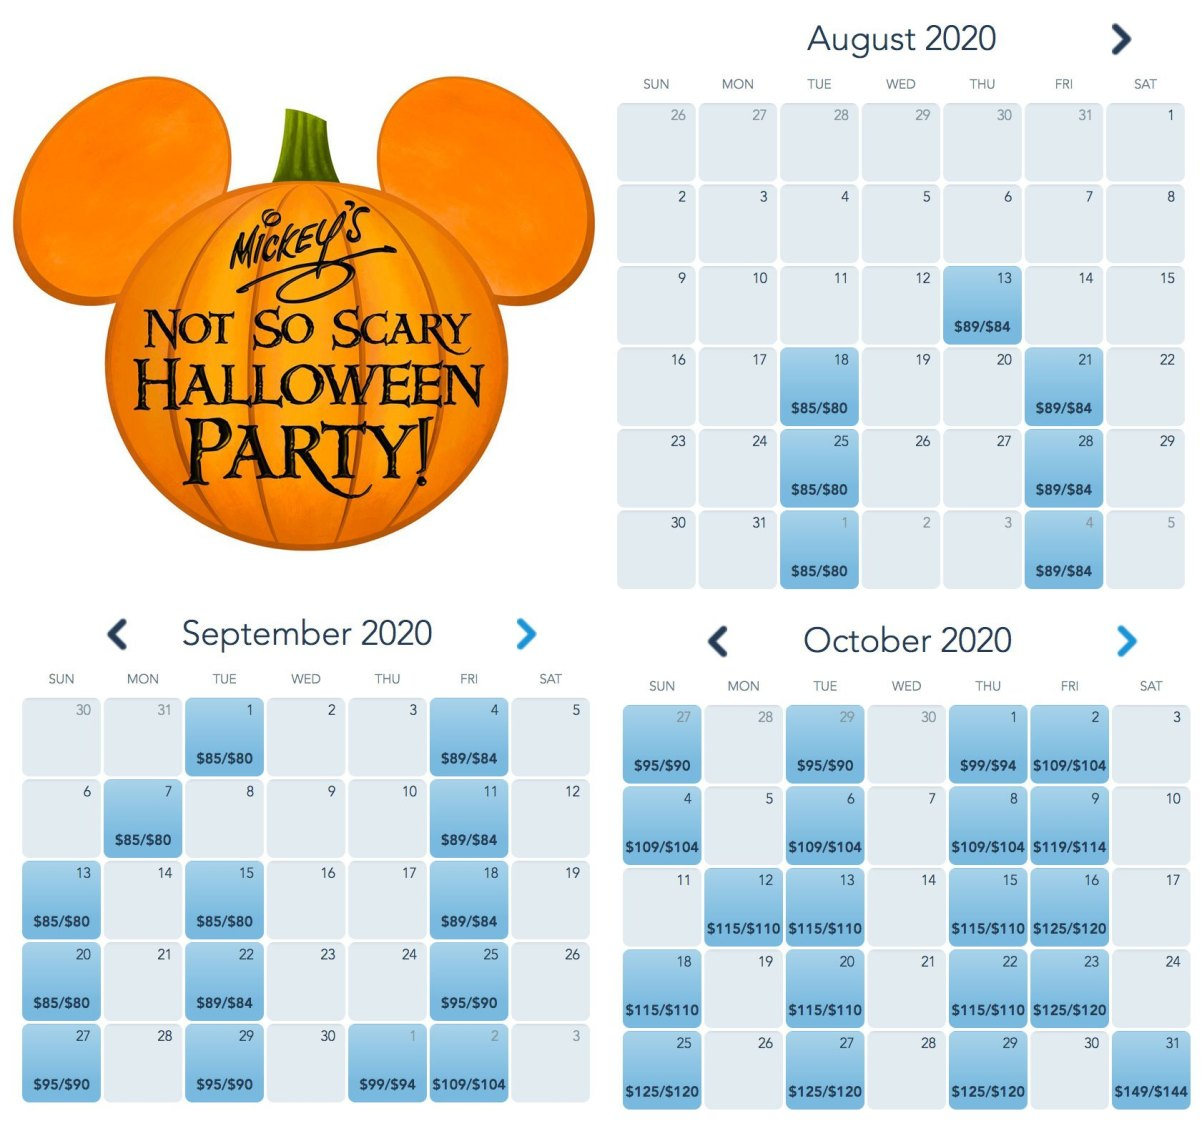 Boletos ya a la venta para la fiesta de Halloween Mickey's Not So Scary 2020 3